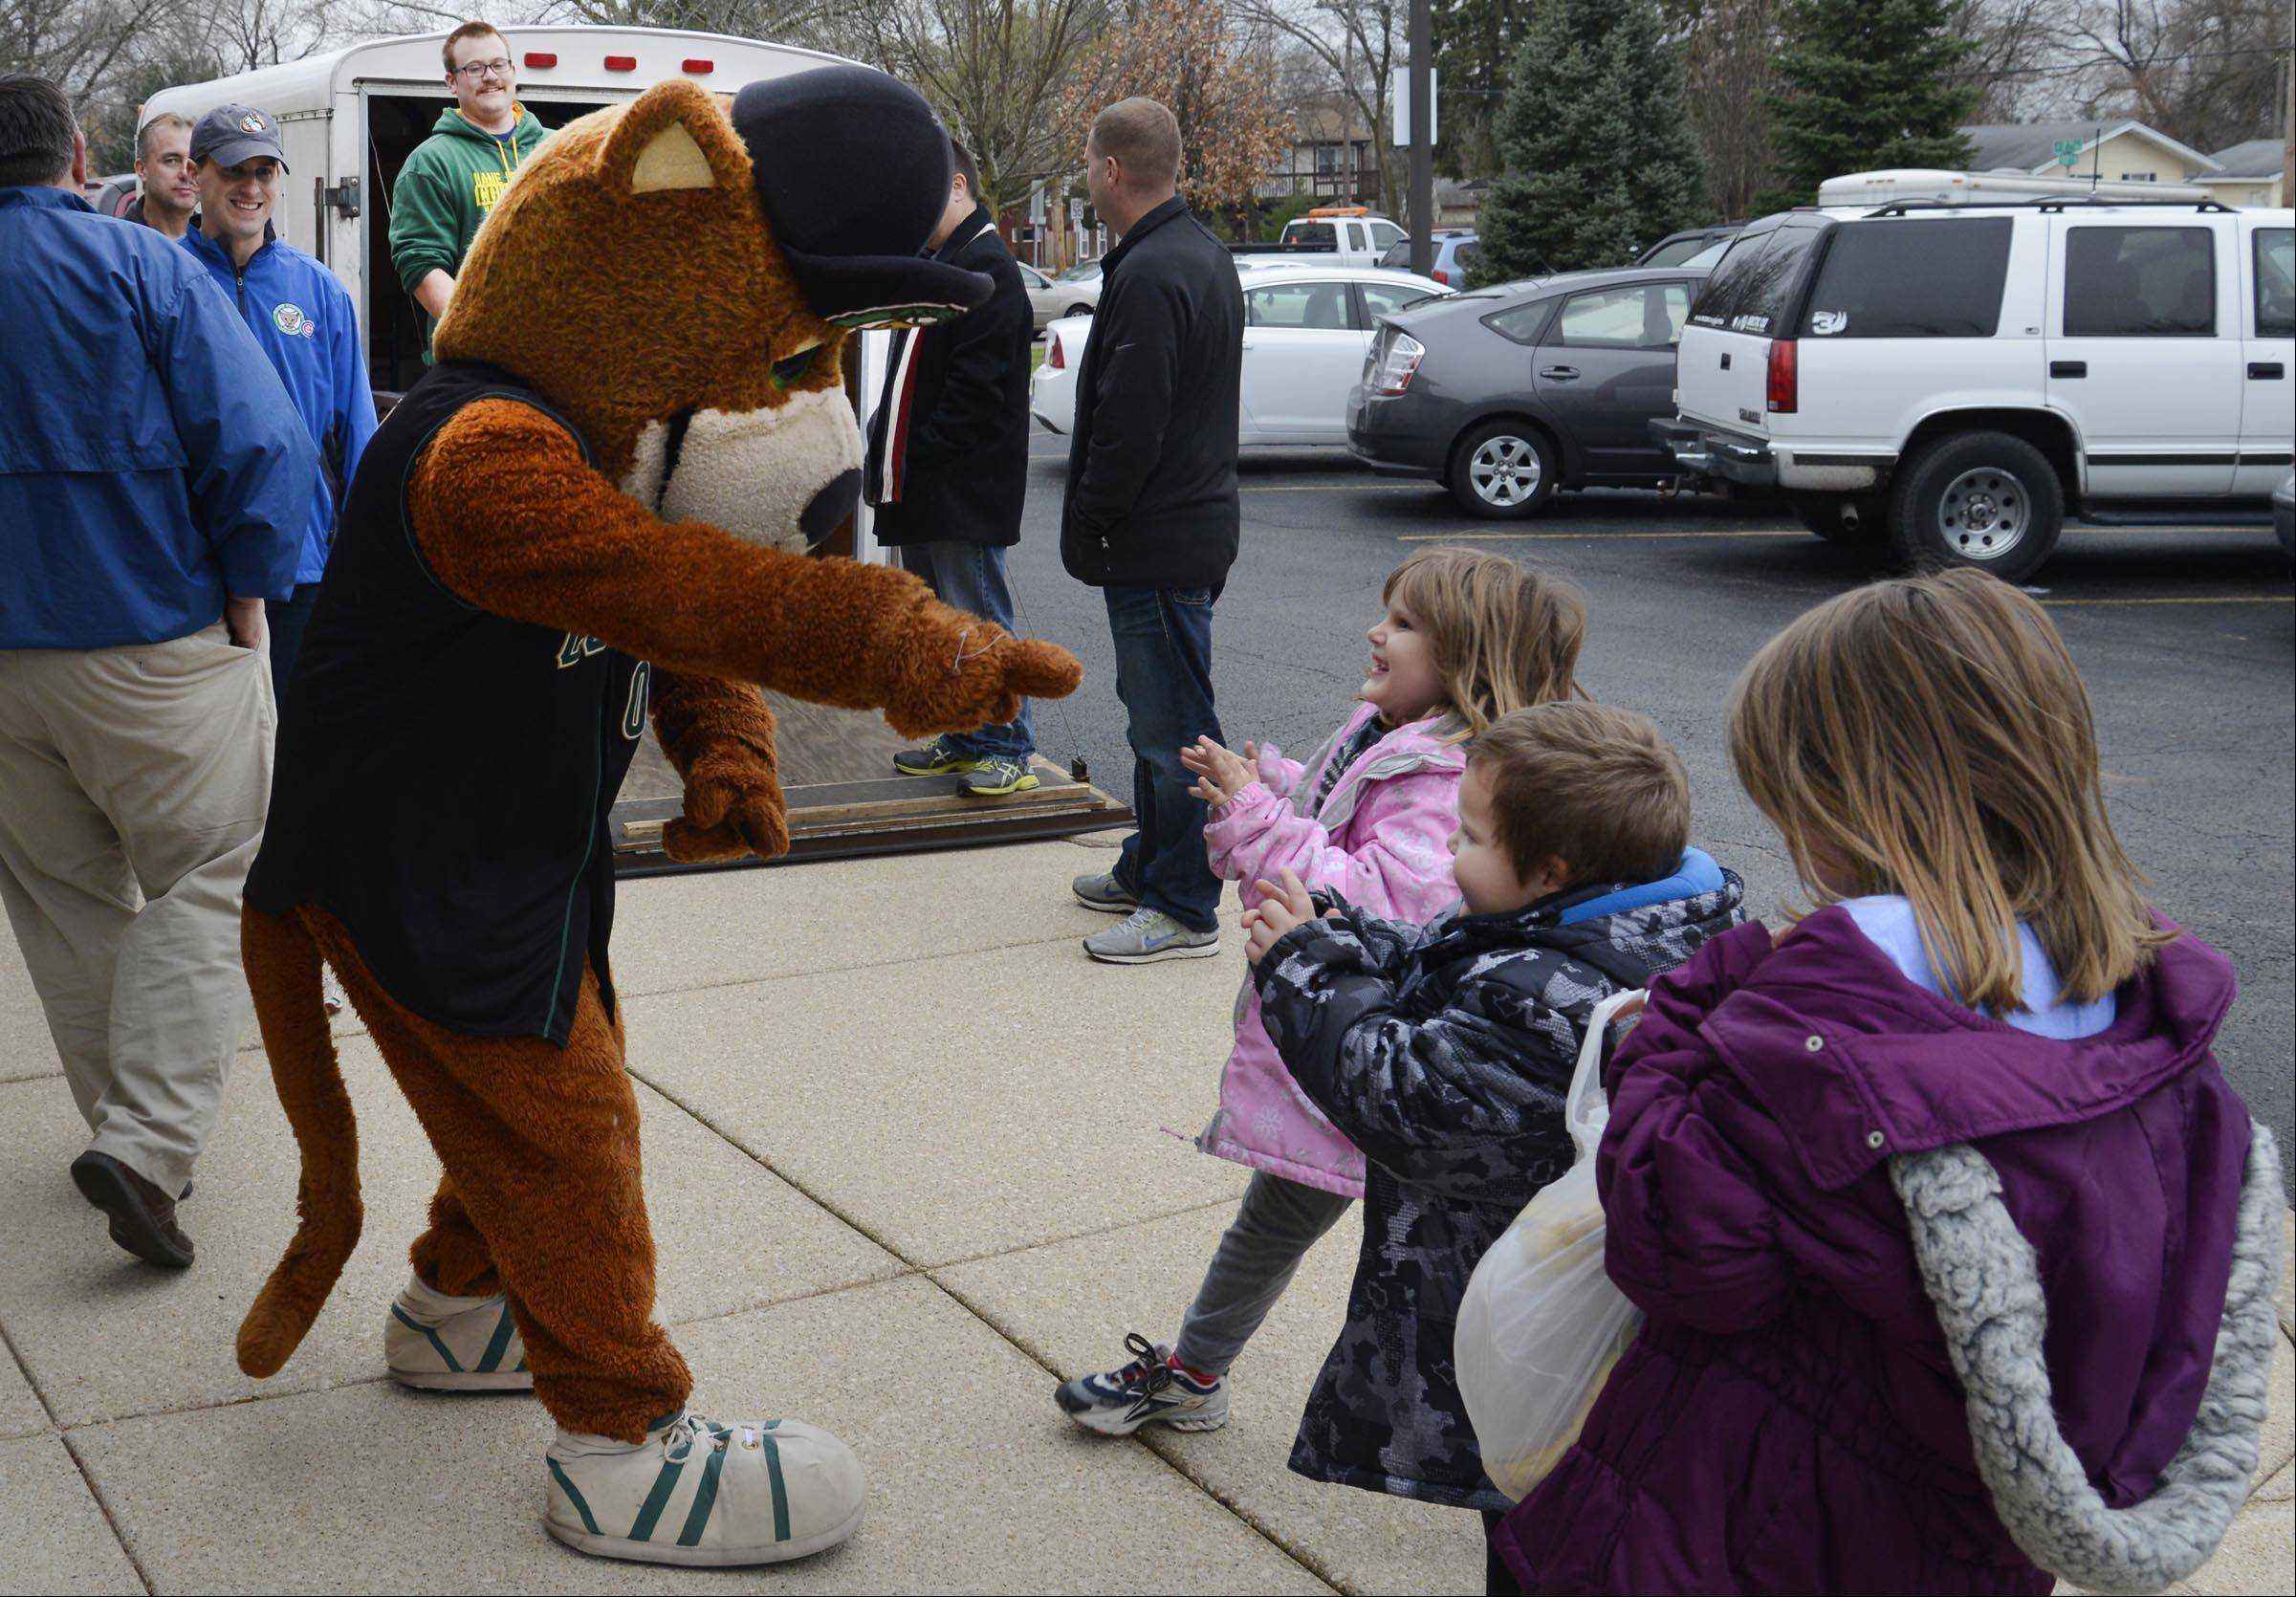 Kane County Cougars mascot Ozzie T. Cougar goofs around with children as the baseball team�s staff assists the Salvation Army Tri-City Corps in handing out frozen turkeys and chickens to more than 300 families in need Thursday at the Joe K. Anderson Community Center in St. Charles.